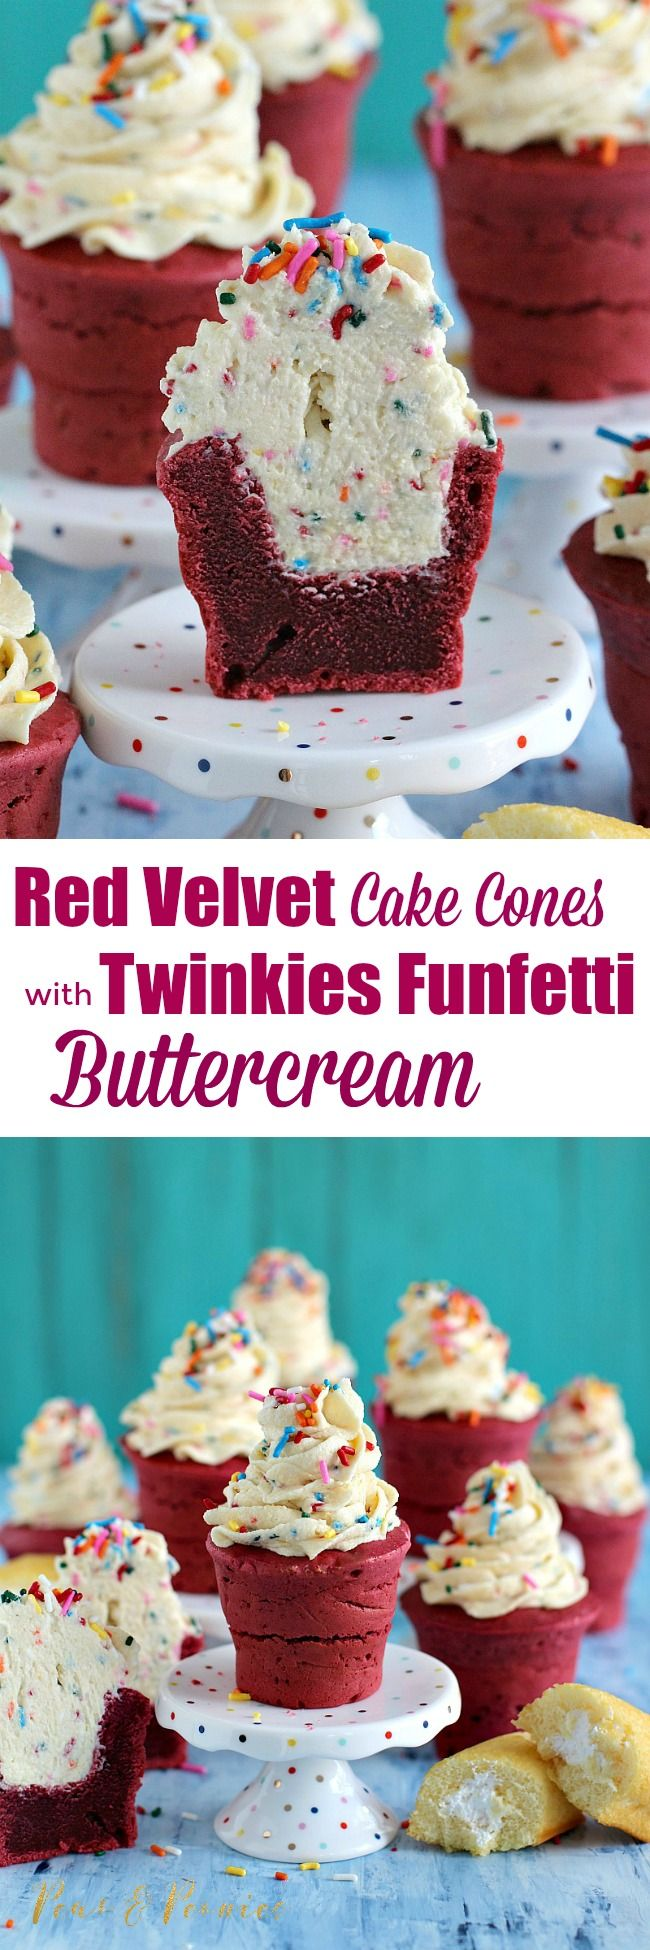 Red Velvet Cake Cone filled with a fluffy and delicious Twinkies Buttercream, made with real Twinkies and lots of sprinkles.